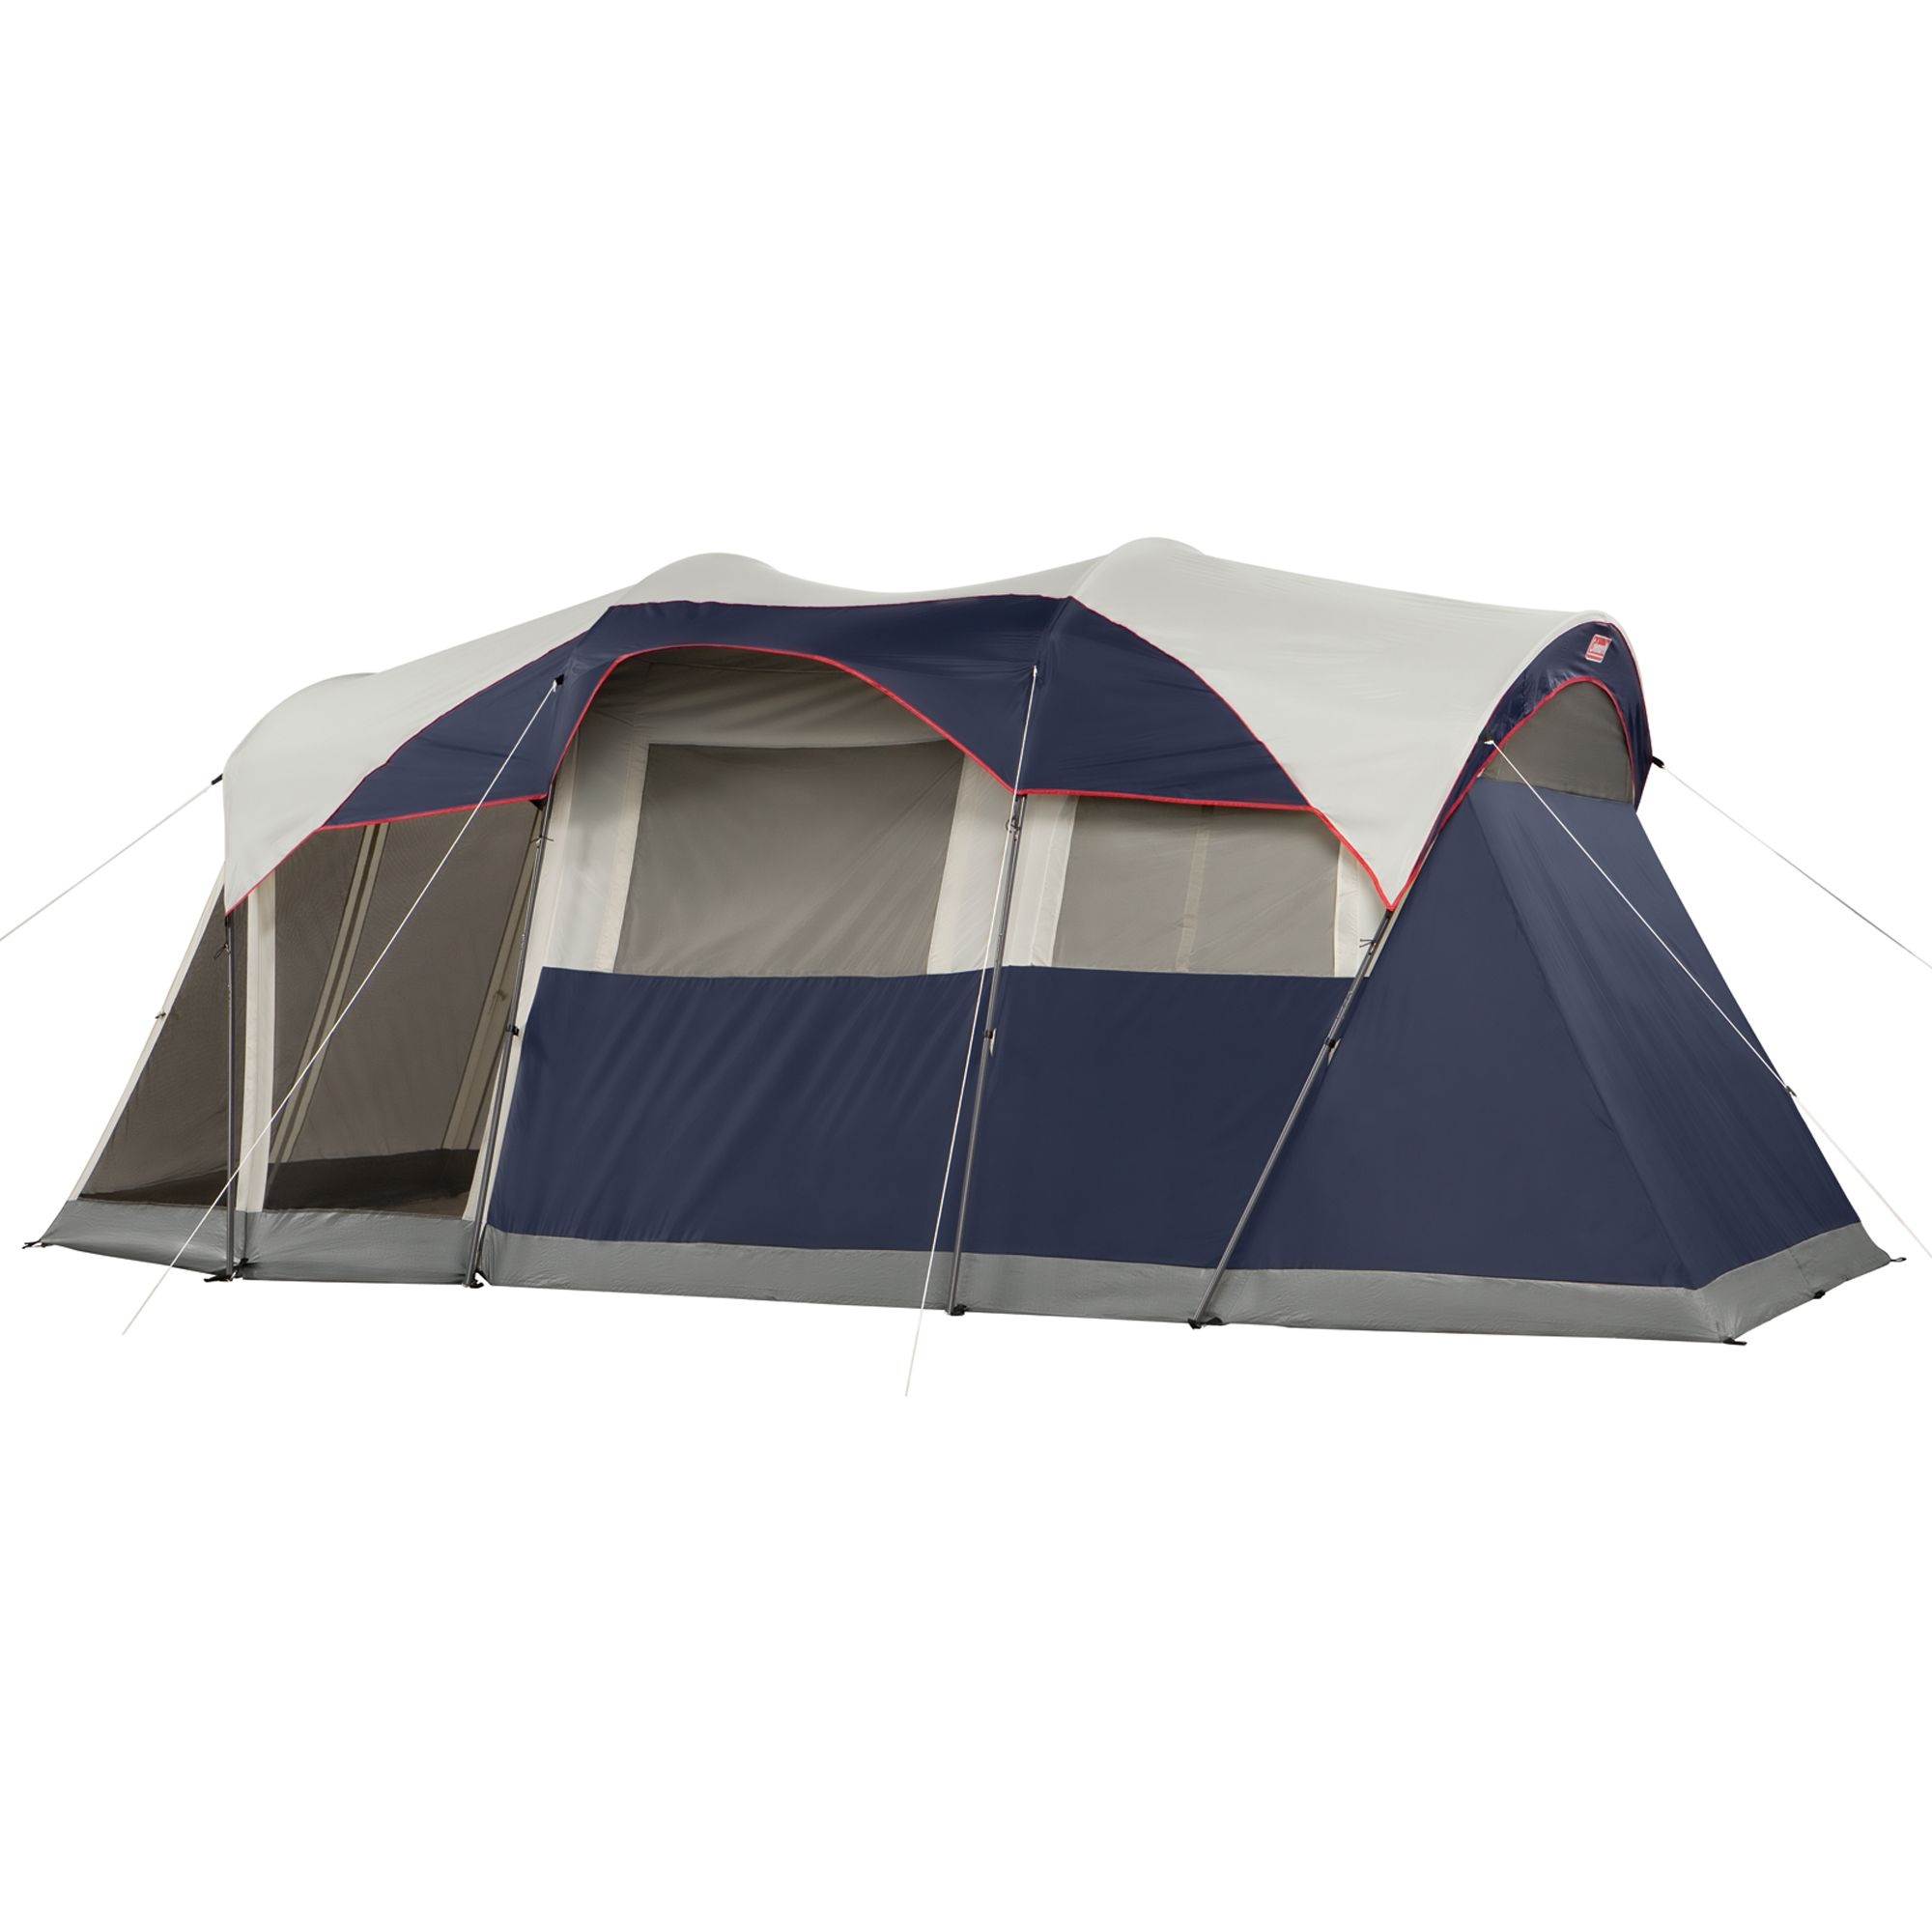 Elite Weathermaster 6 Person Lighted Tent With Screen Room